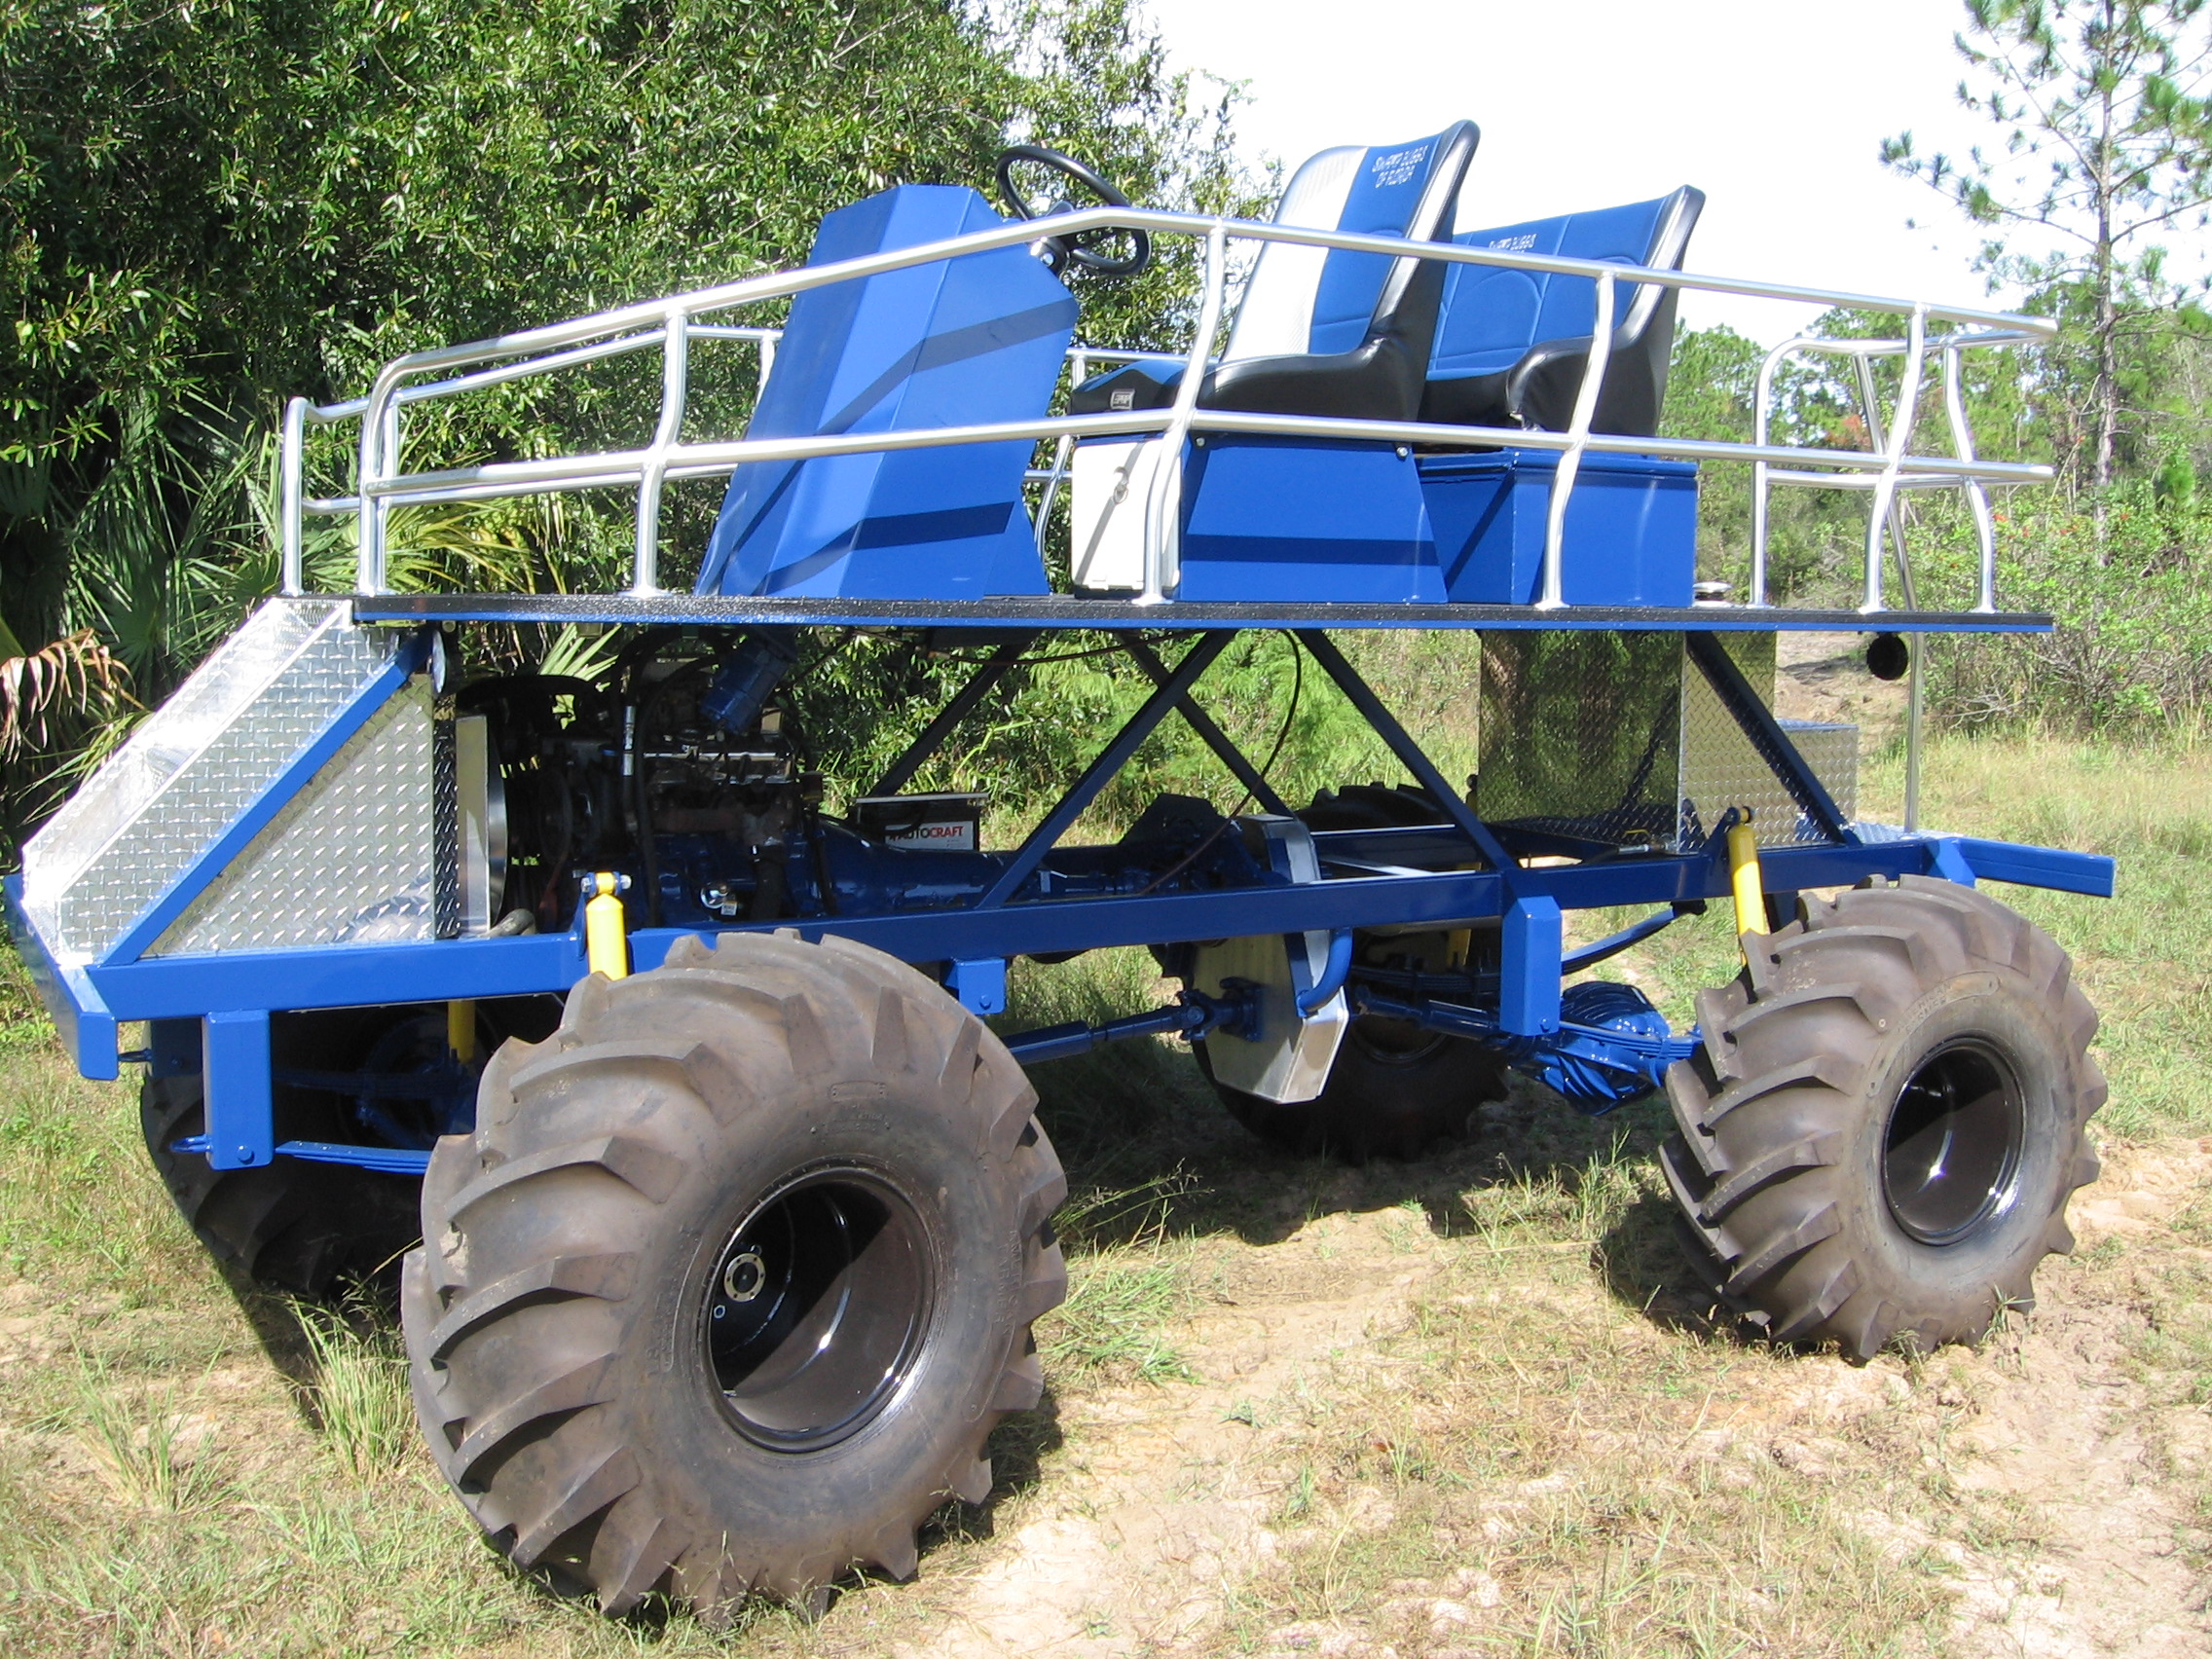 Dune Buggy For Sale Craigslist Release Date Price And Specs